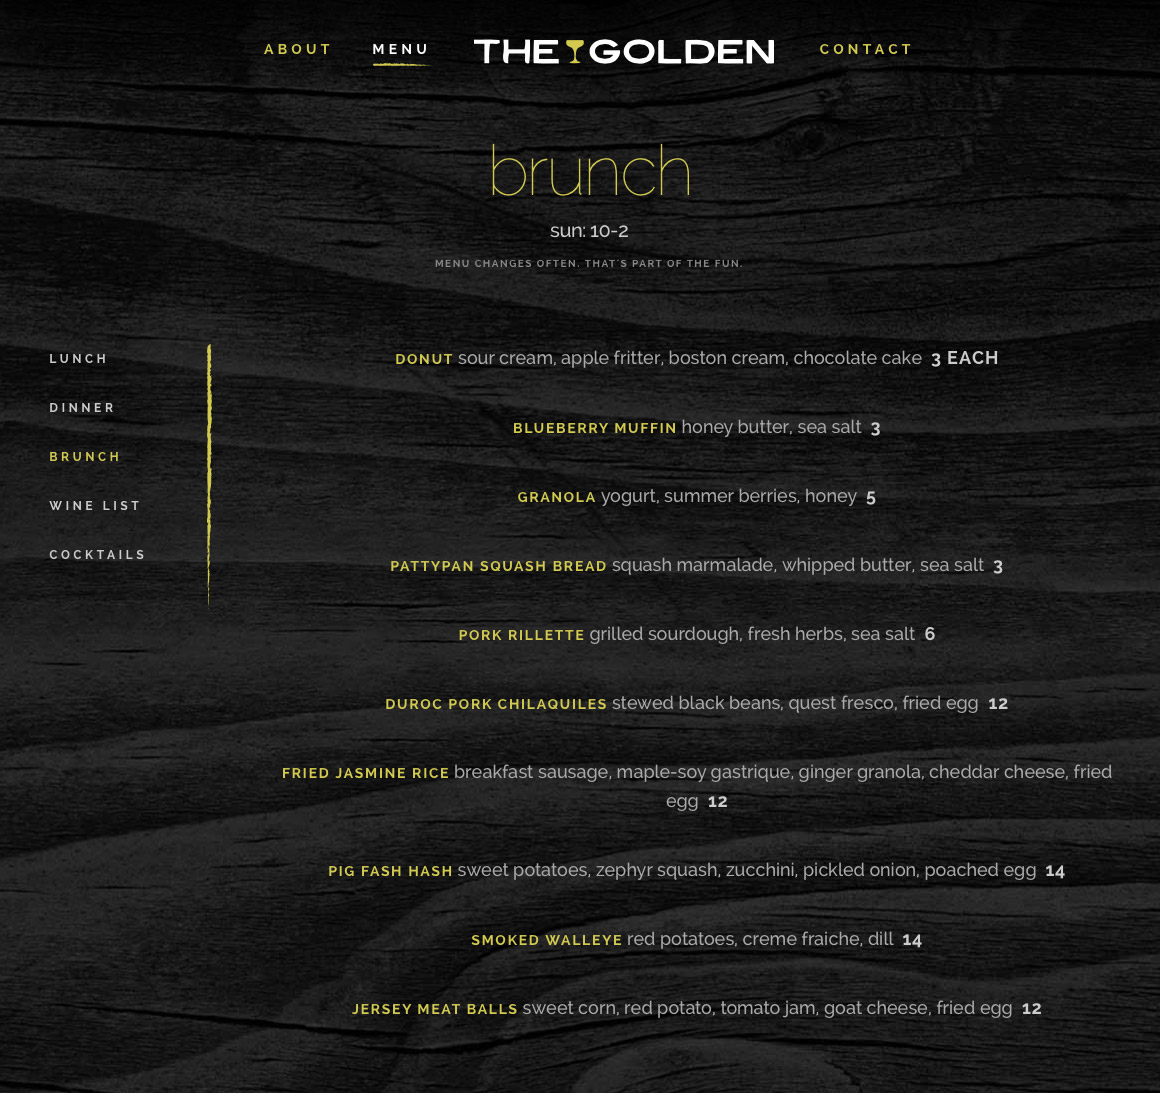 The Golden: website menu page